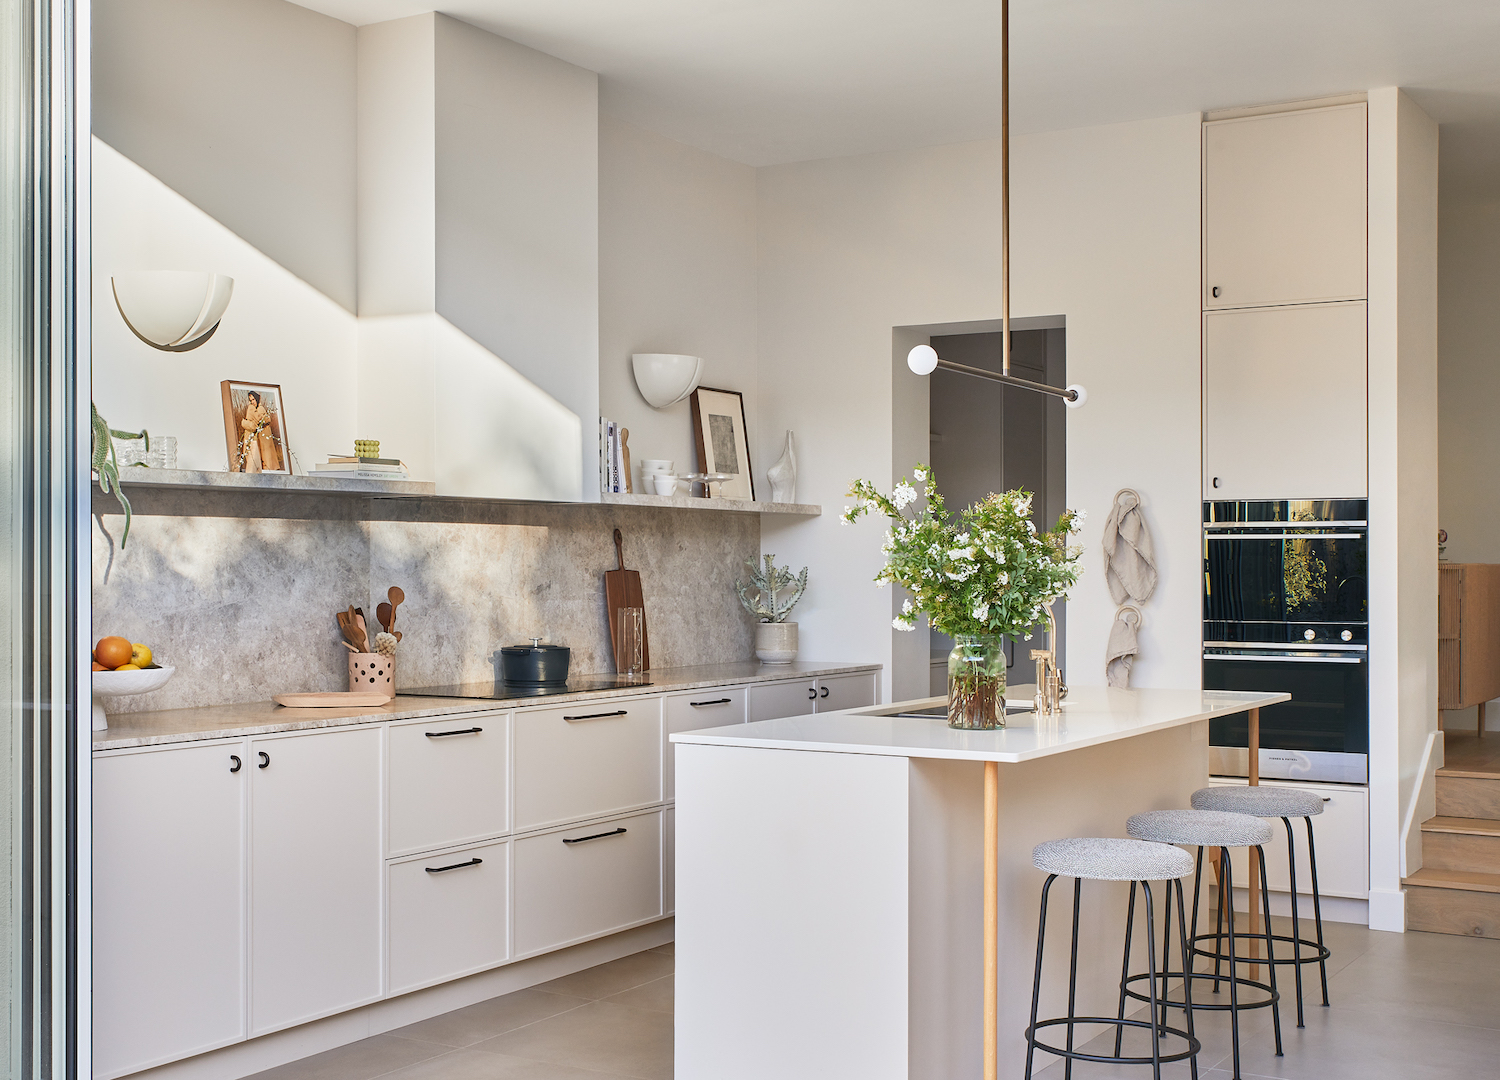 At Home with Designer Sheena Murphy